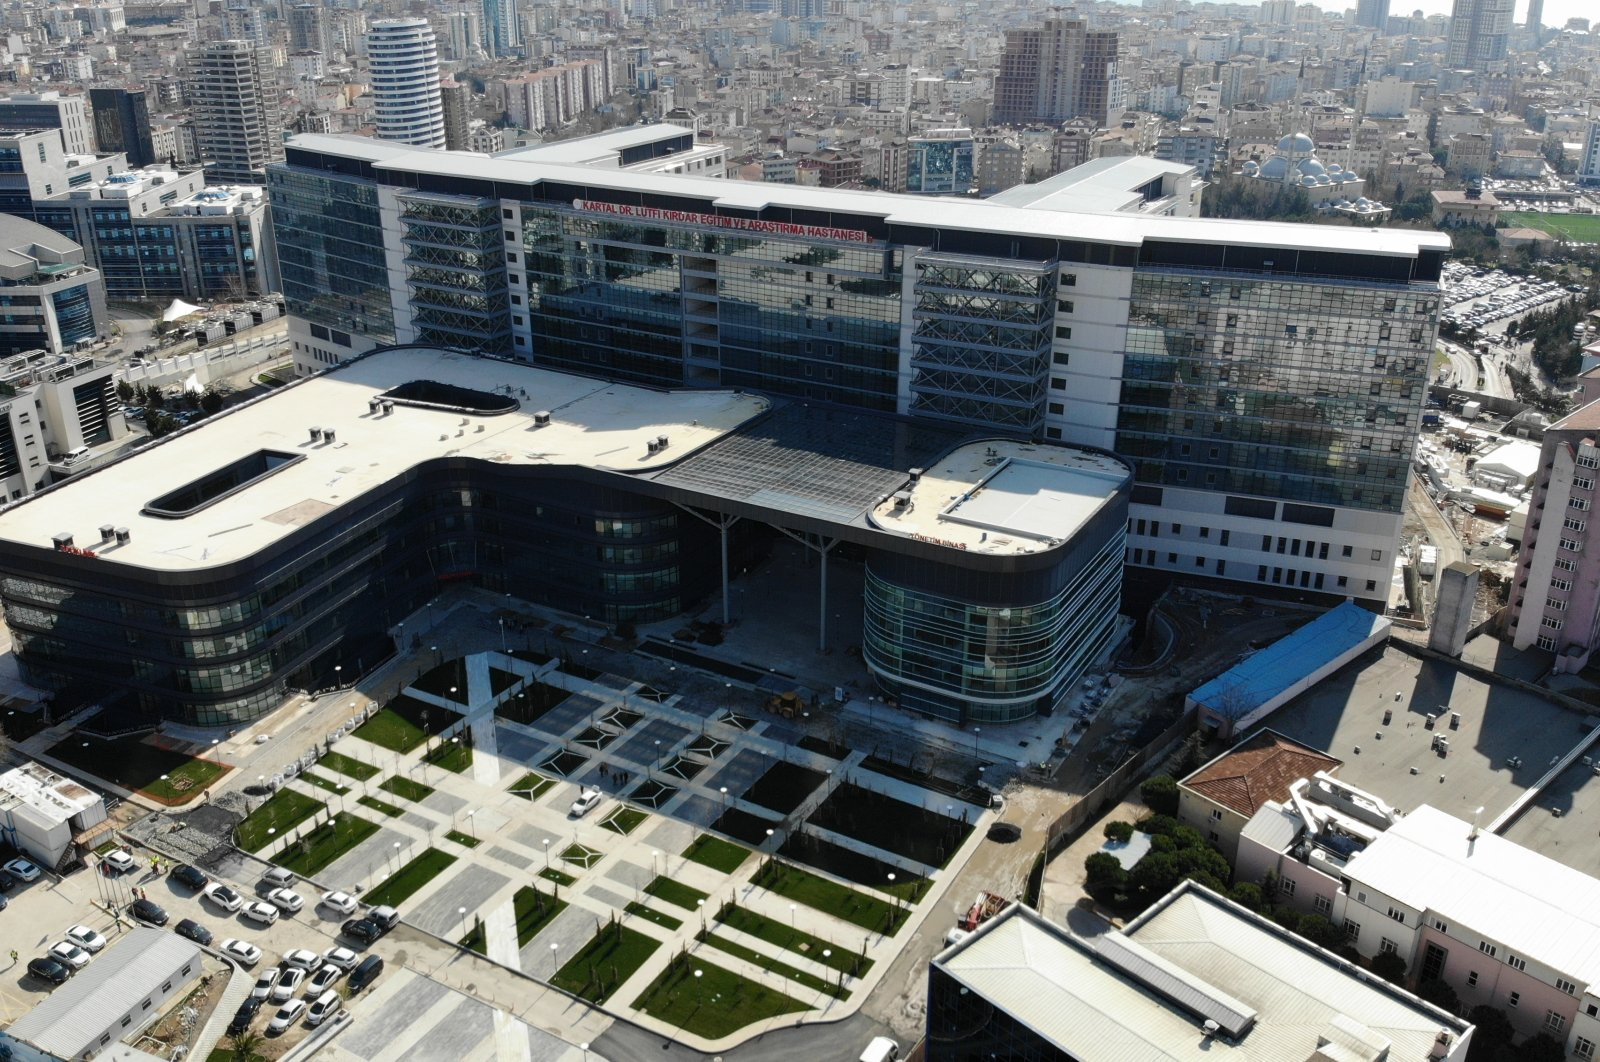 Dr. Lütfi Kırdar City Hospital in the Kartal district which was opened on July 4, 2020, in Istanbul, Turkey, Jan. 5, 2021. (AA PHOTO)